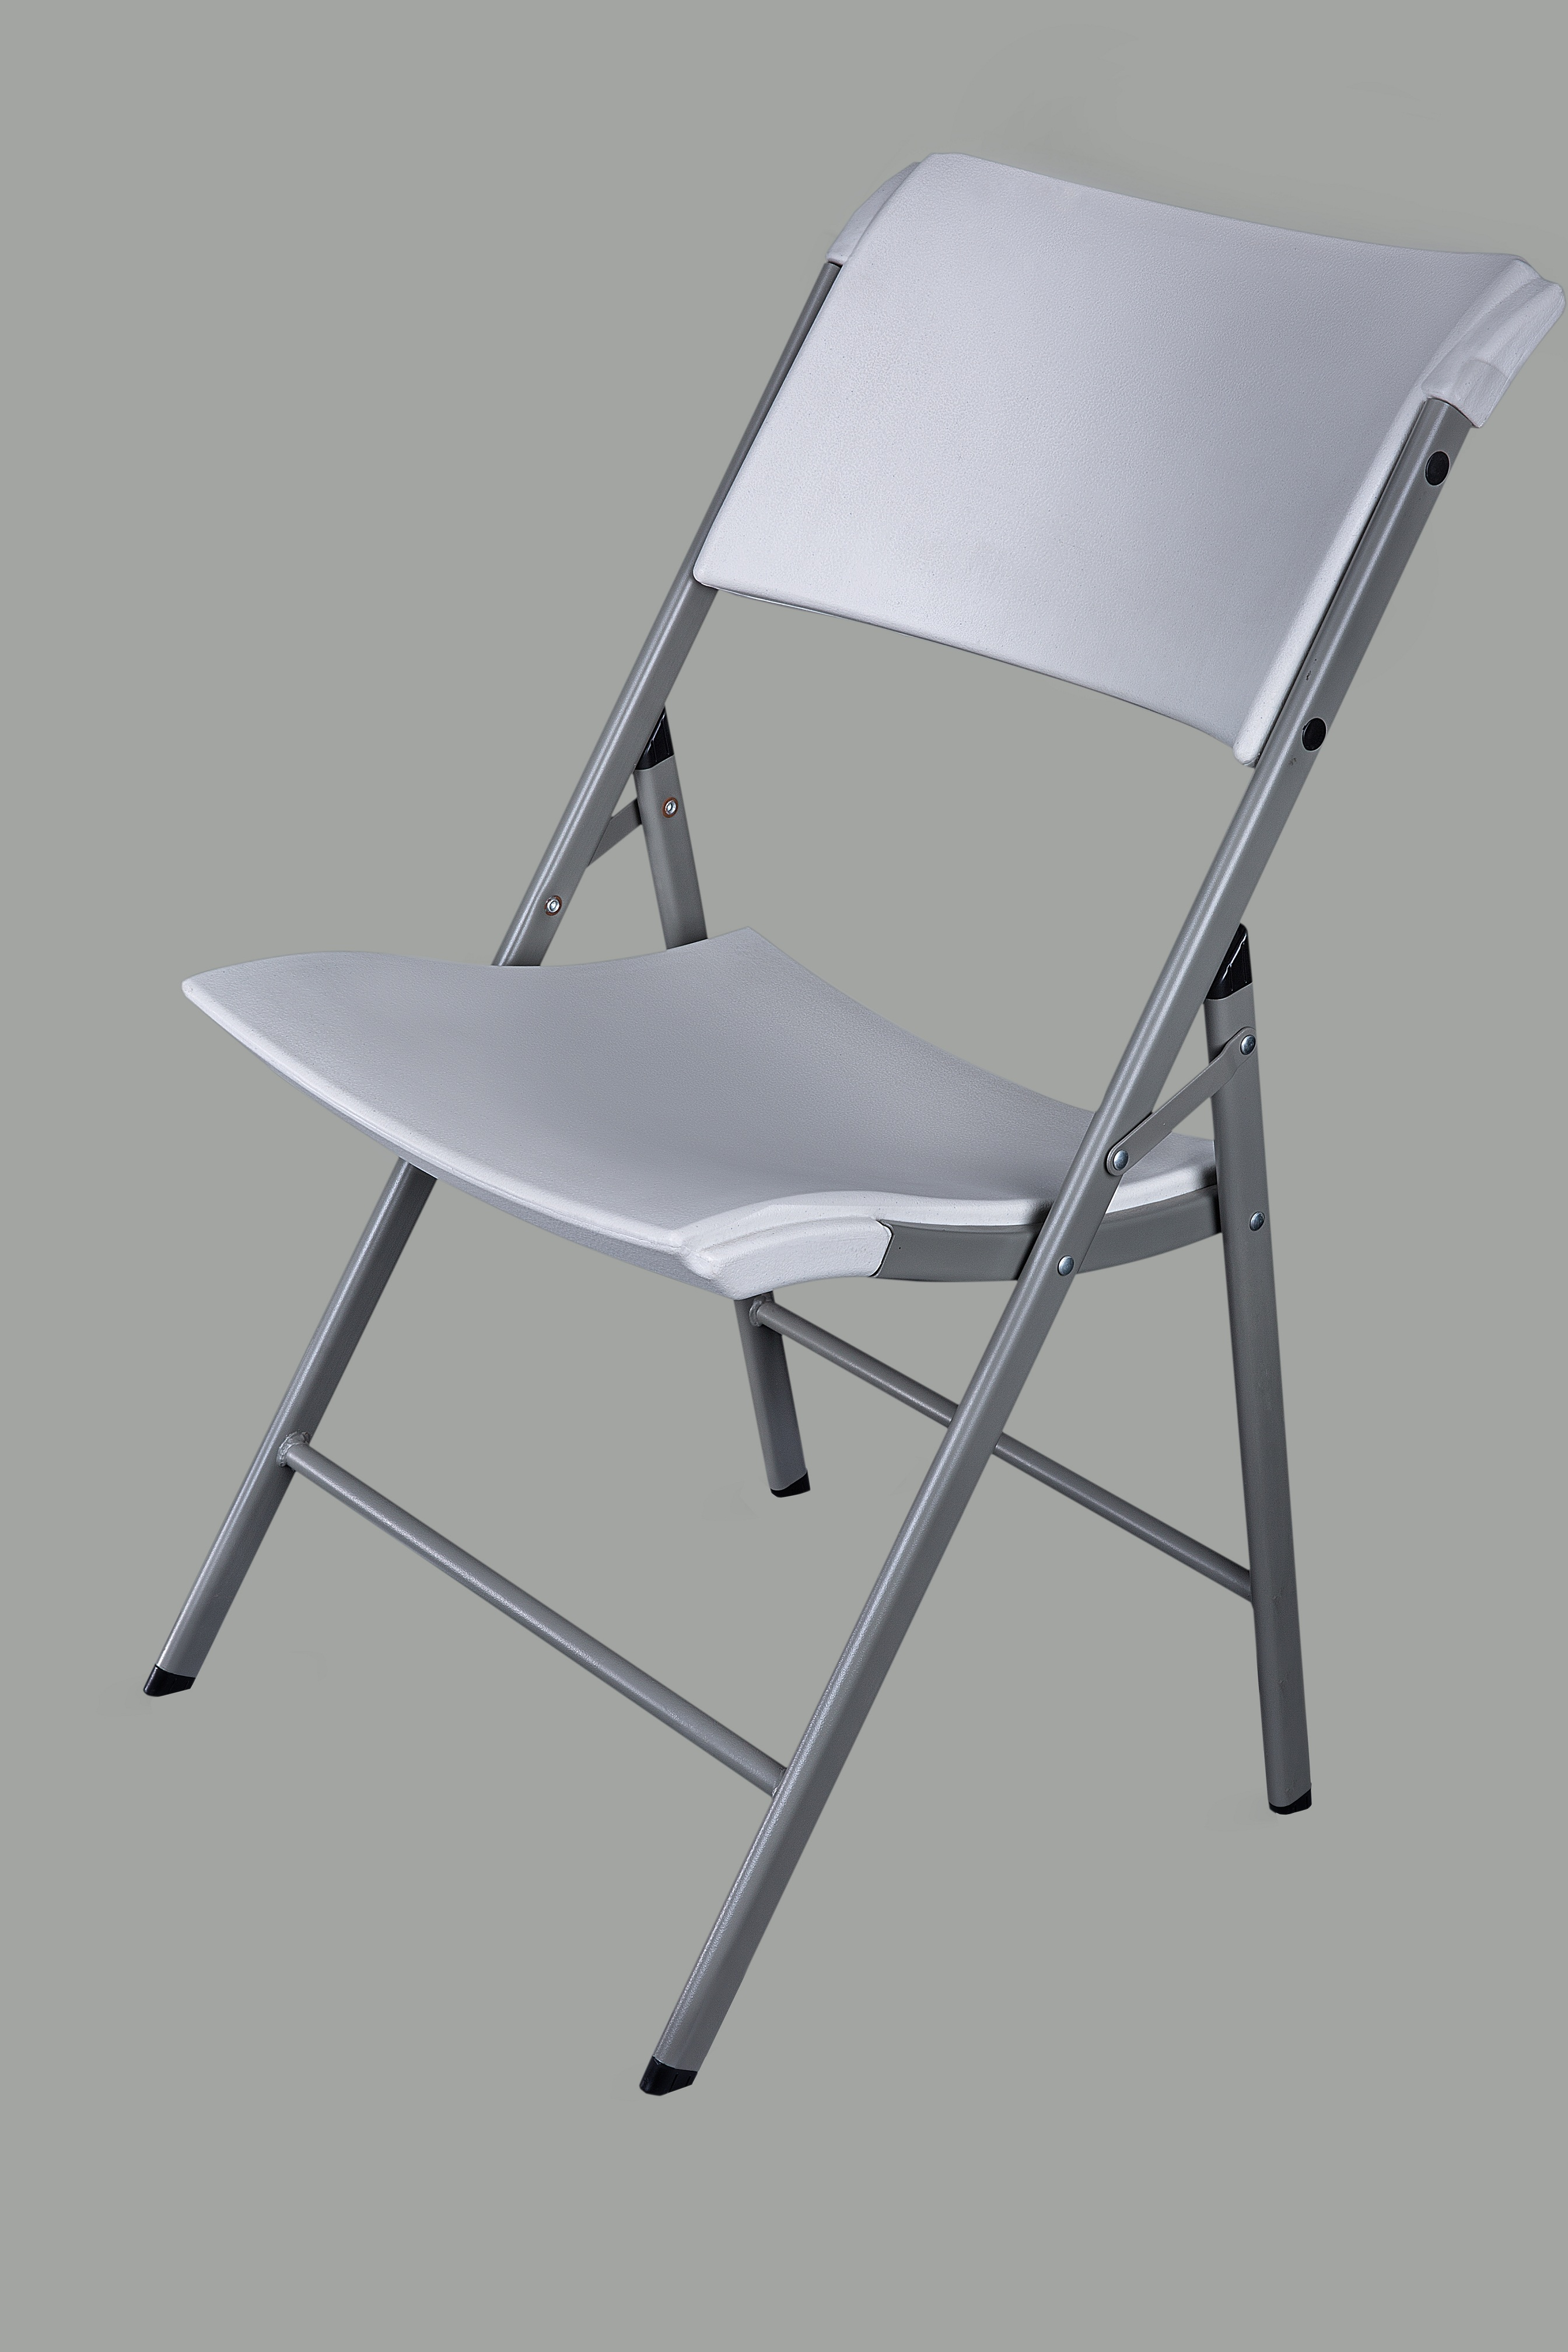 Party Foldable Folding Chair